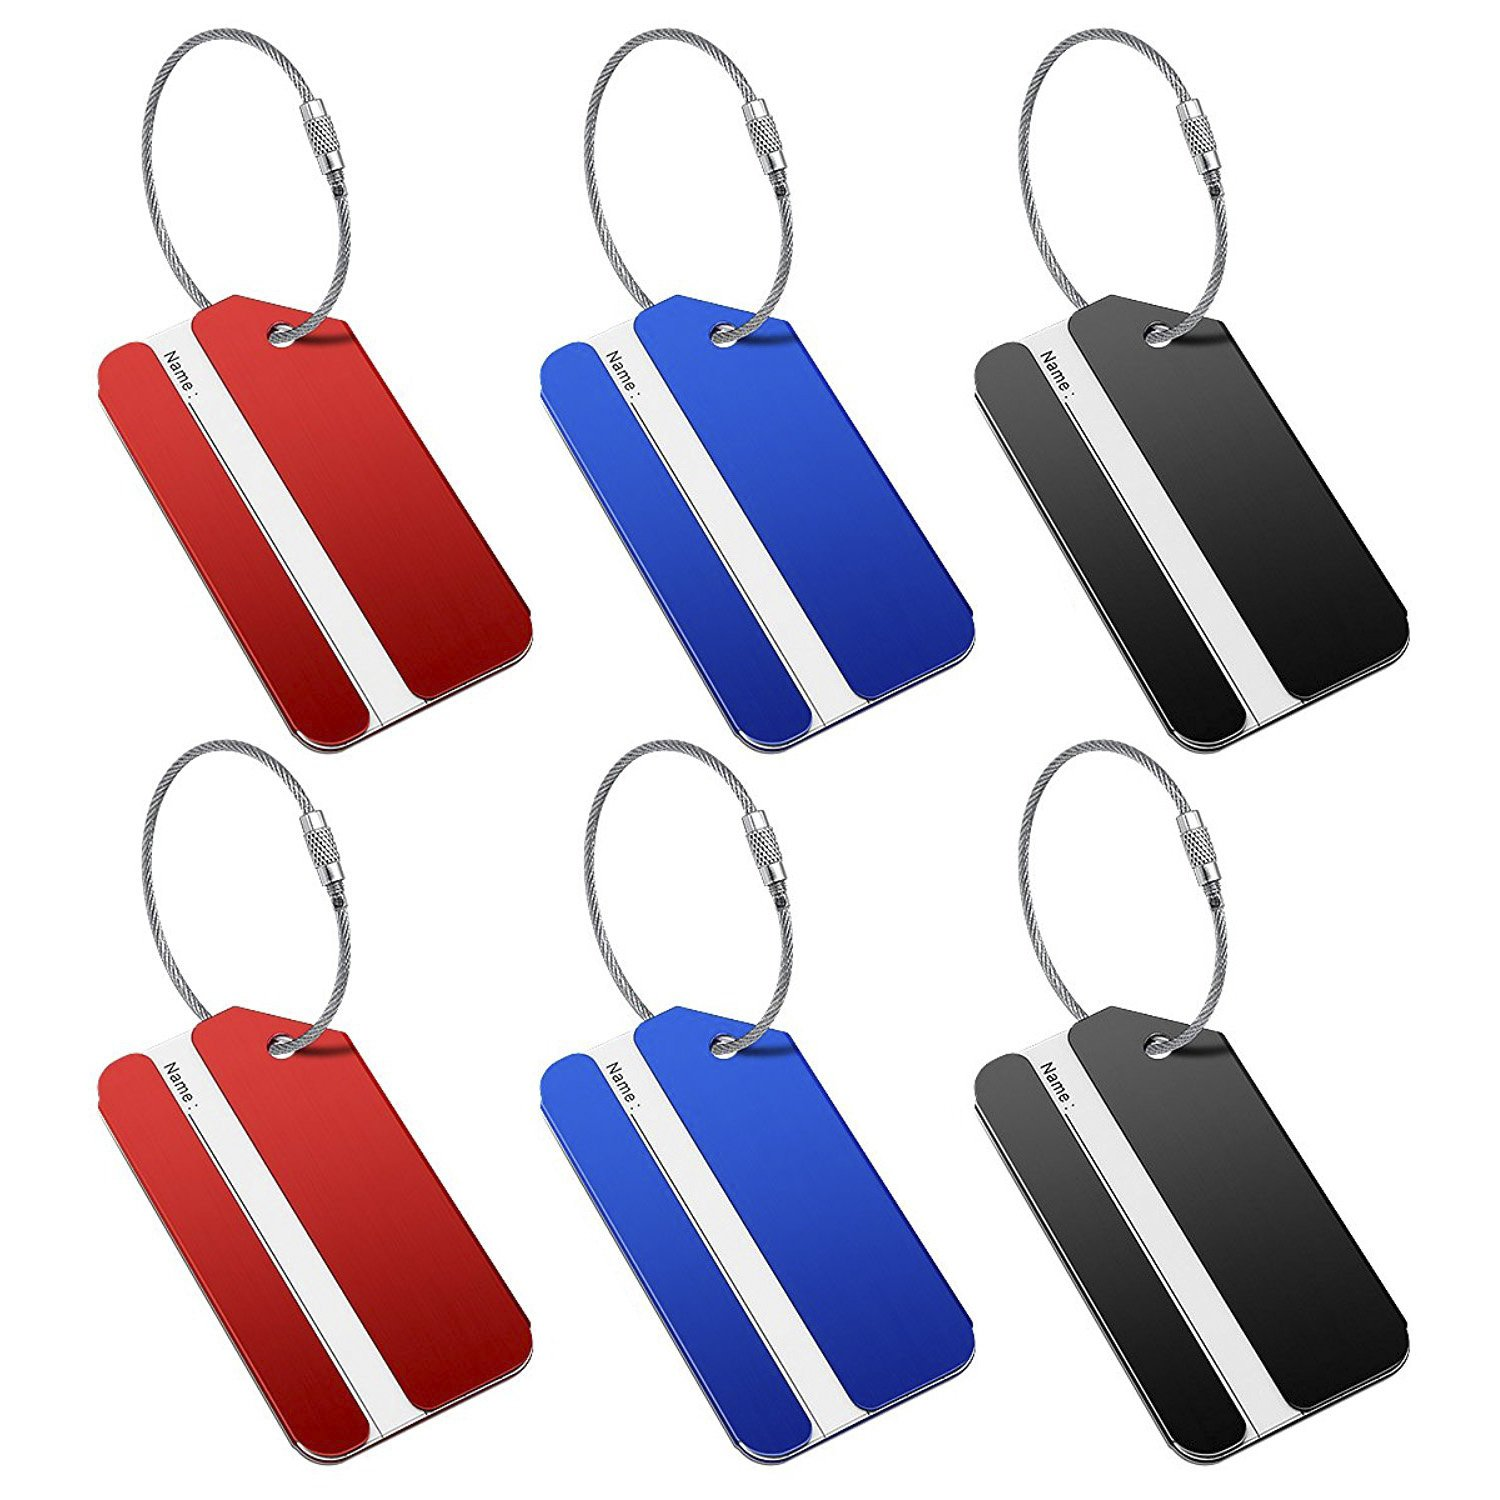 Luggage Tags 6 Pack Travel Bag Tags Women Men Identifier Aluminum Tag for Baggage Suitcases with Stainless Steel Loop